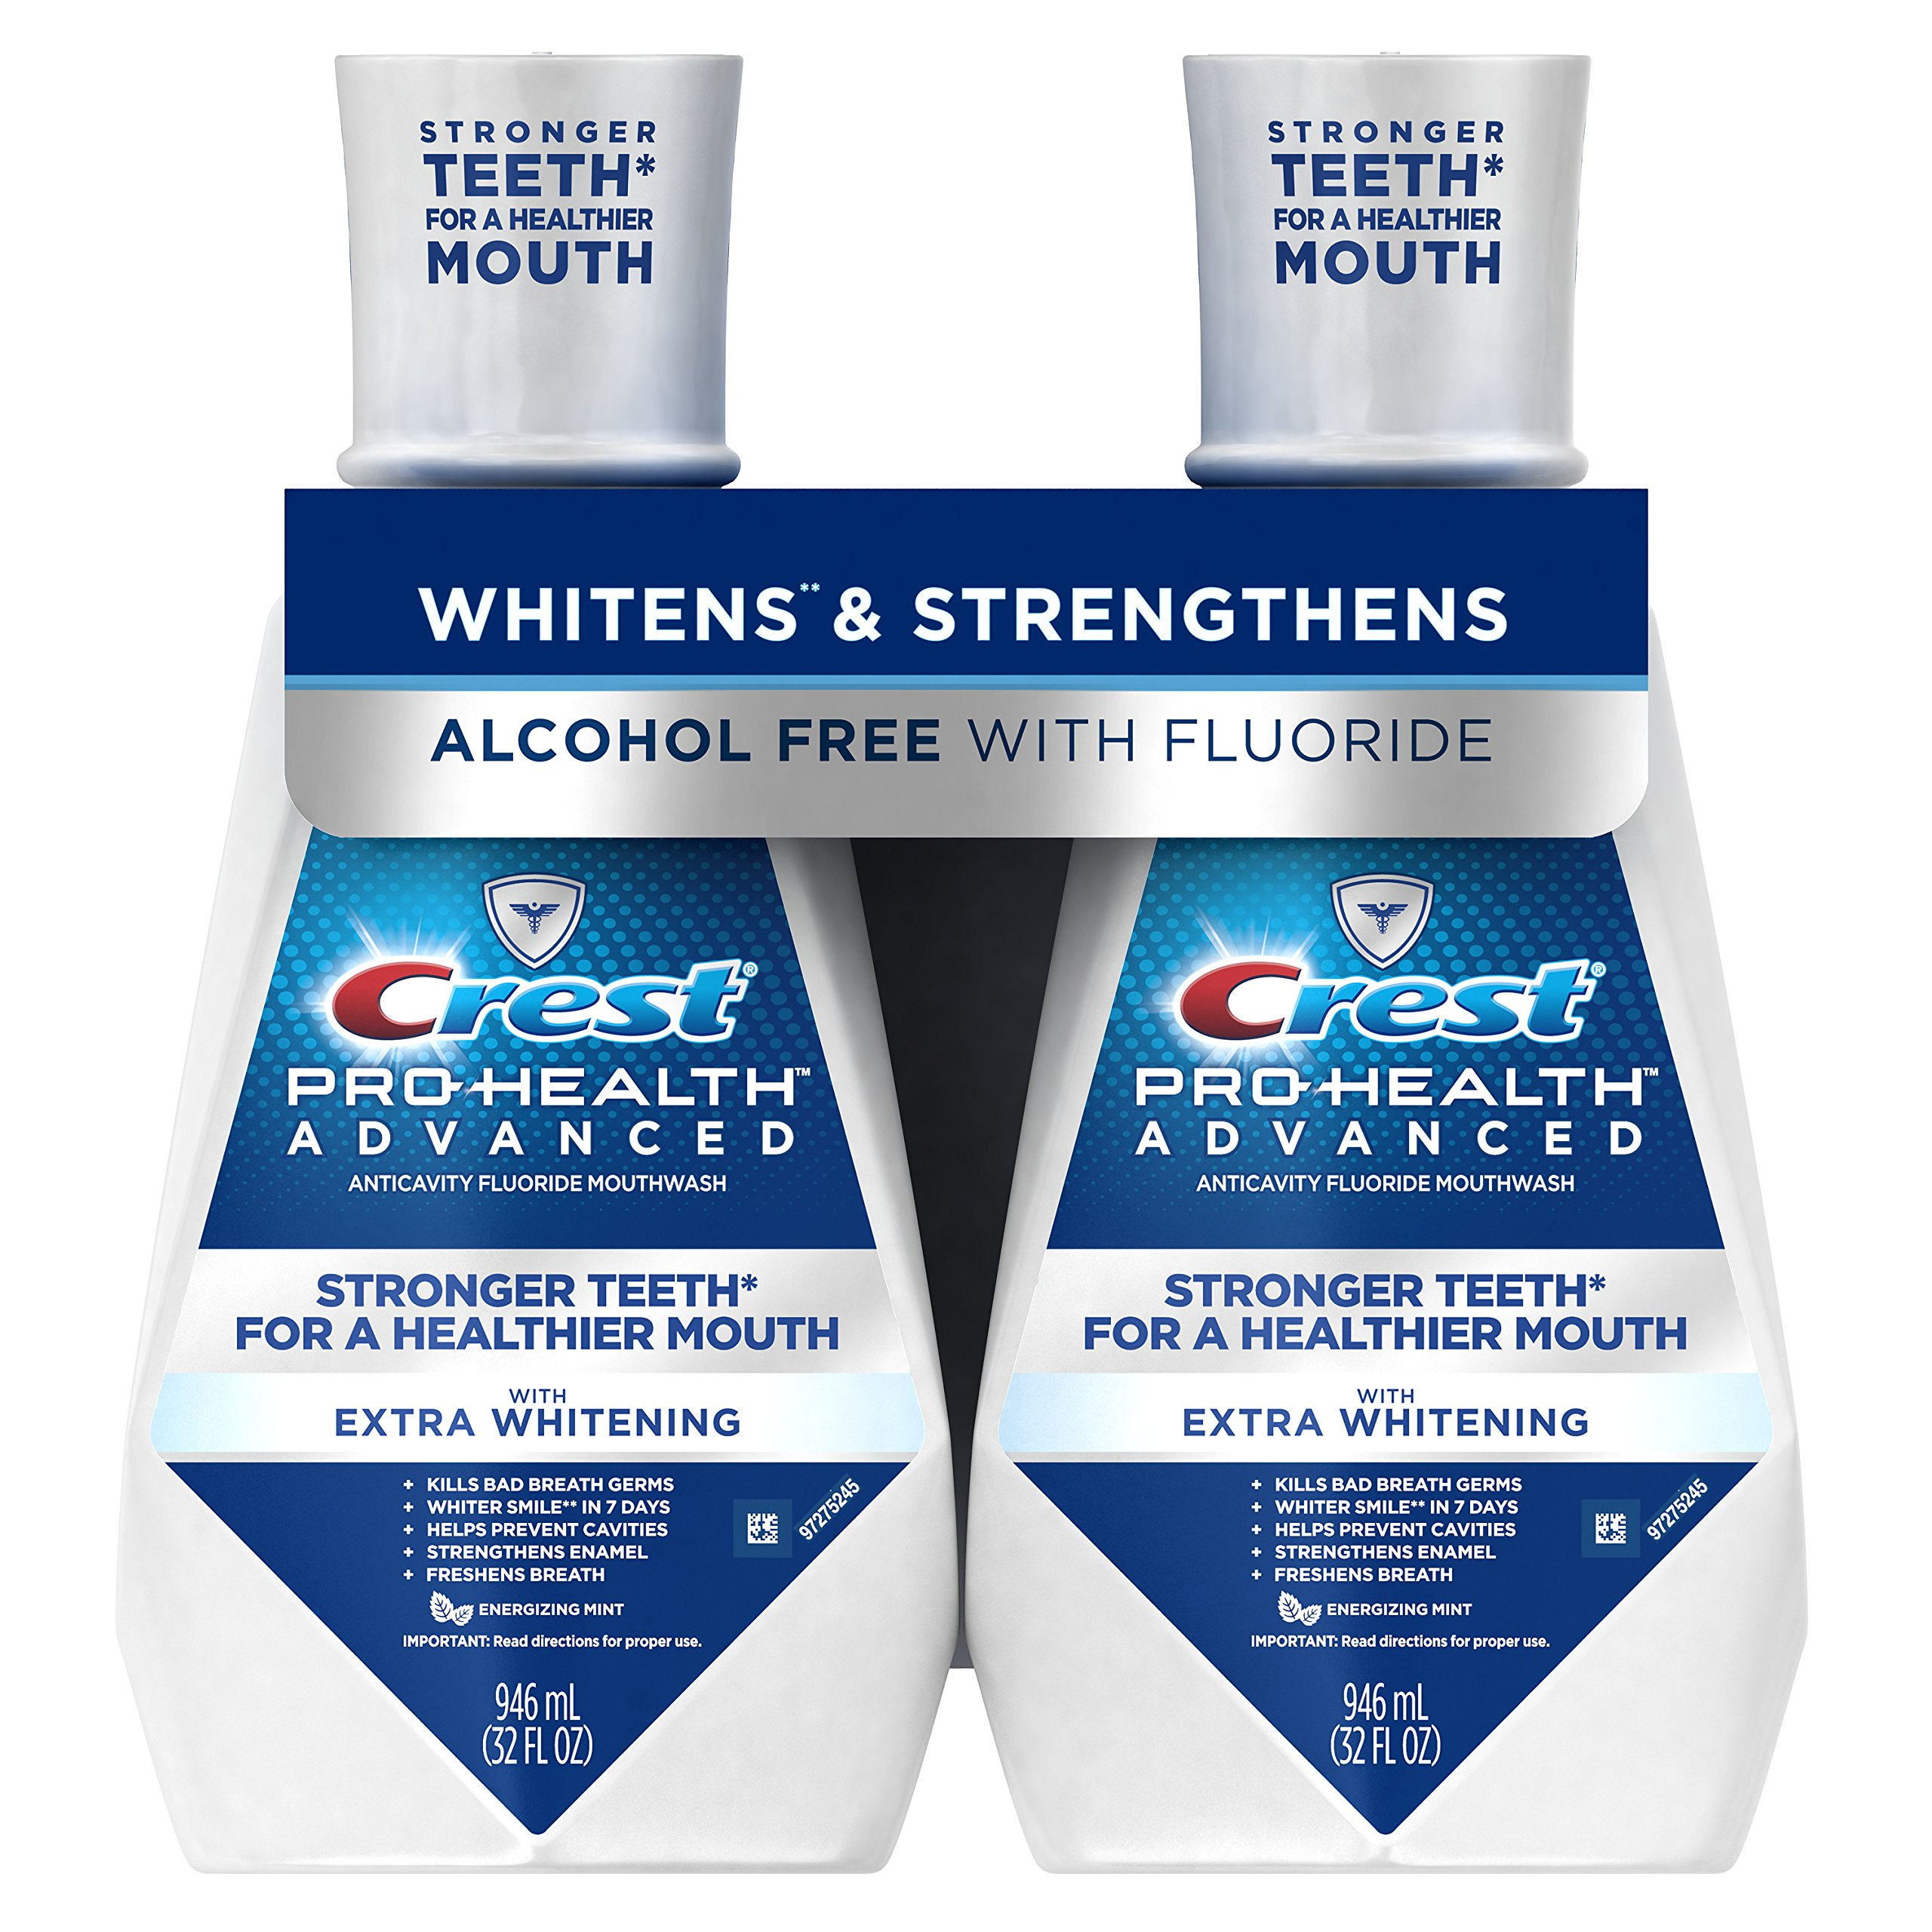 Crest Pro-Health Advanced Mouthwash with Extra Whitening, Energizing Mint, 32 Oz, Pack of 2